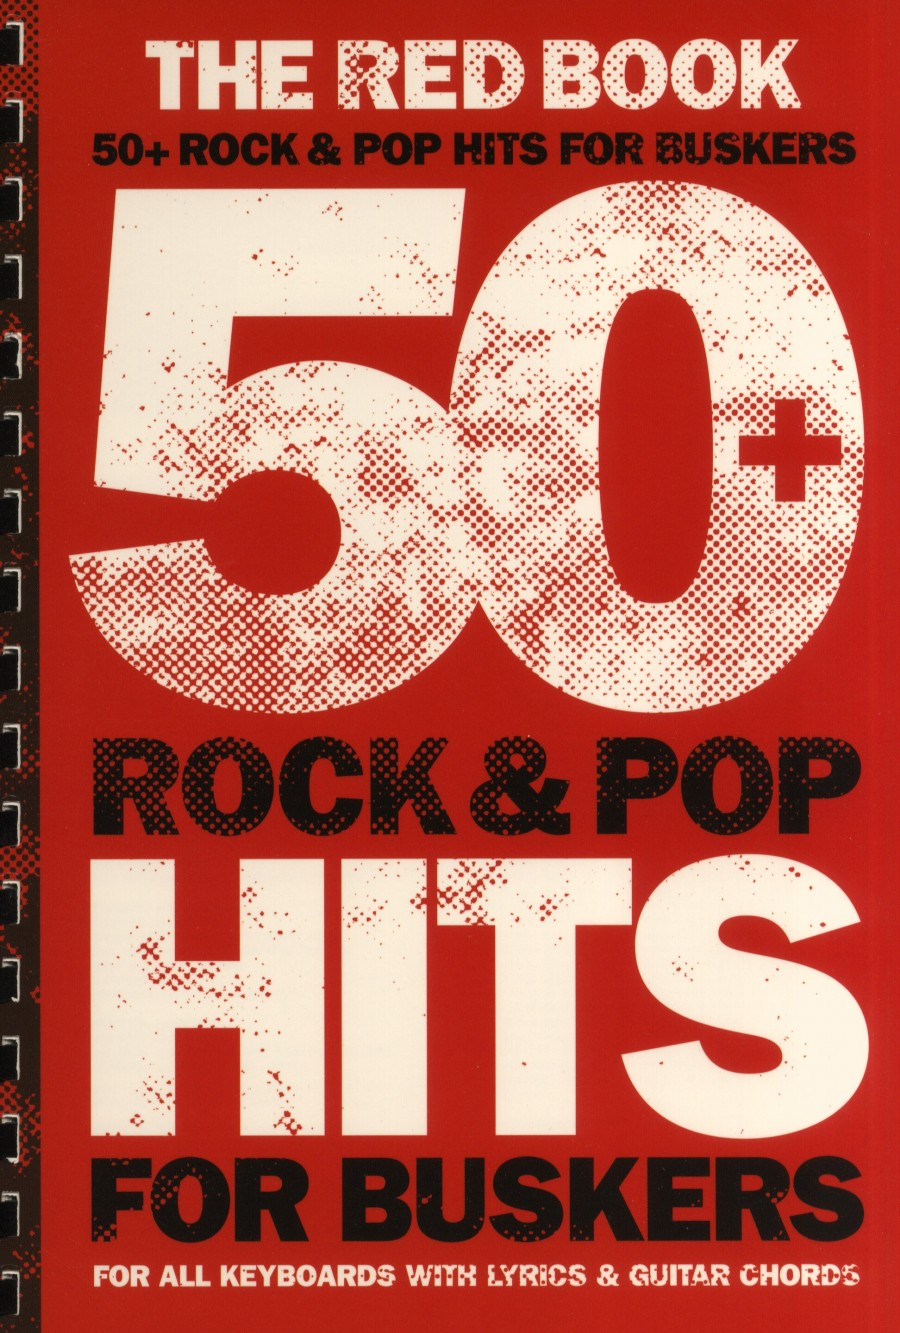 50 Rock And Pop Hits For Buskers The Red Book Presto Sheet Music